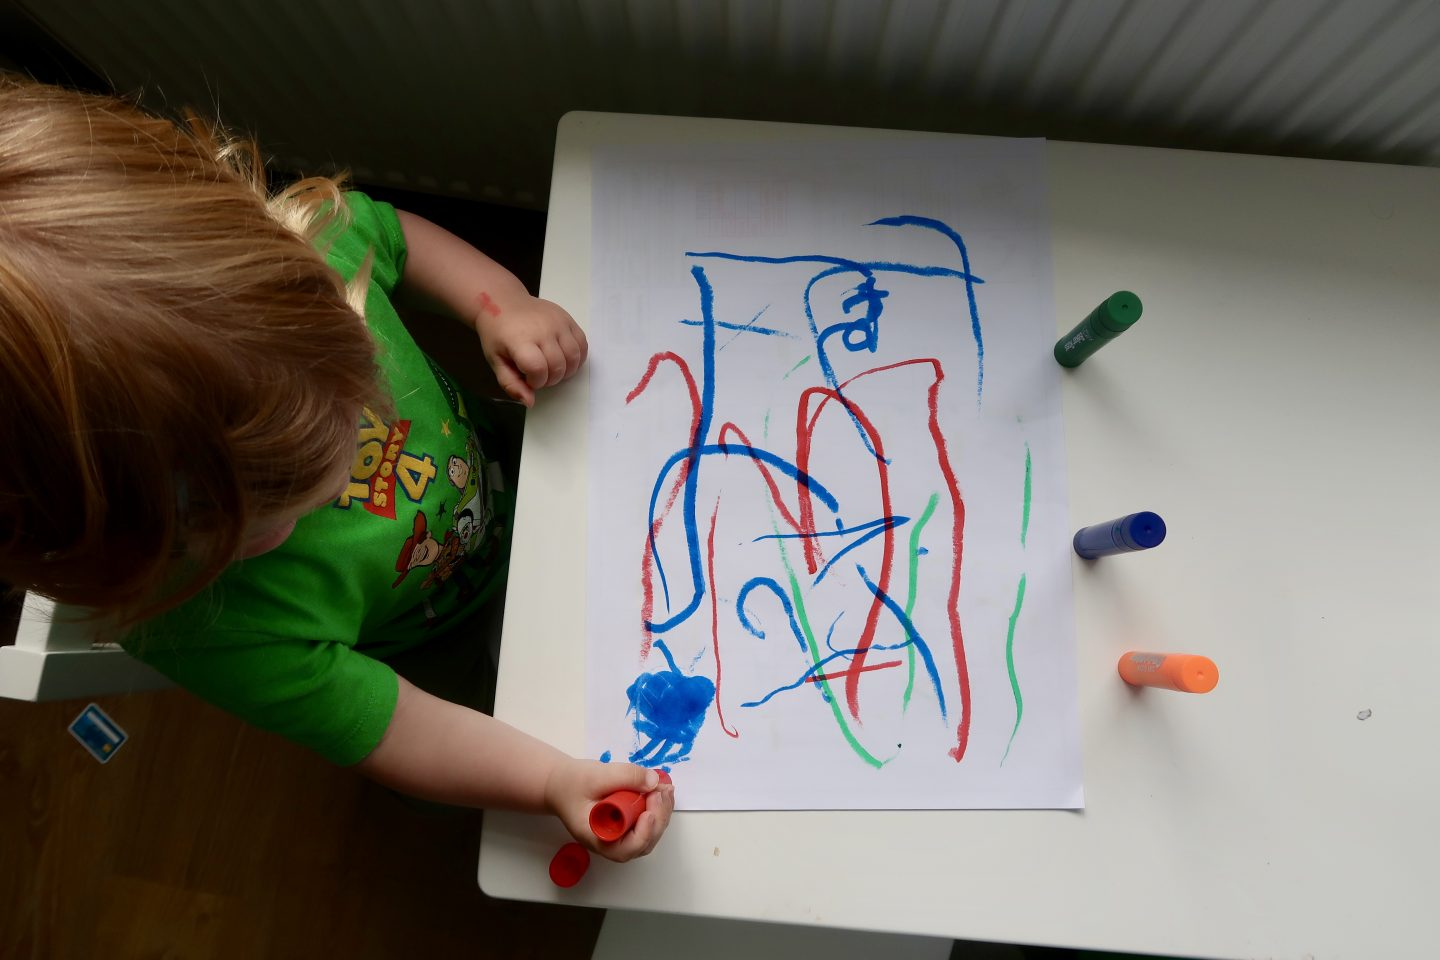 A top down view of a little boy at a small table drawing on paper with paint sticks